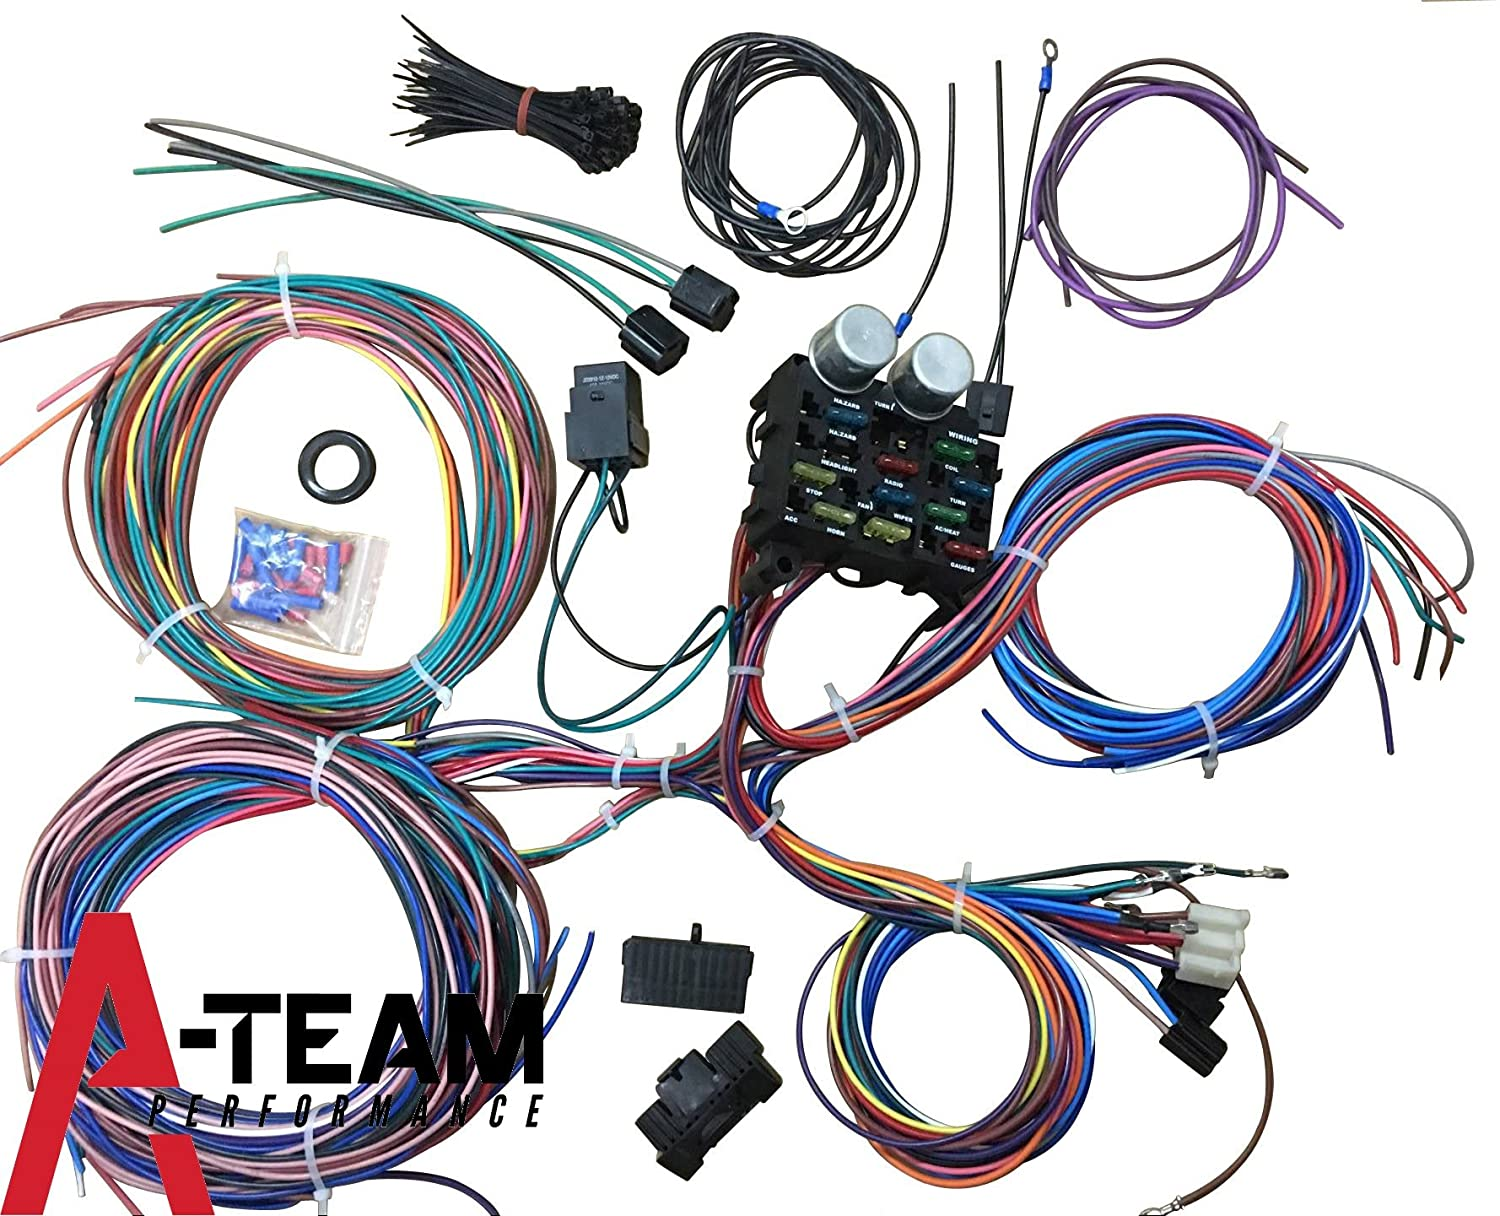 81nvGz8yhML._SL1500_ amazon com mophorn 12 circuit wiring harness 12 fuses universal street rod universal 14 fuse 12-14 circuit wire harness at bayanpartner.co